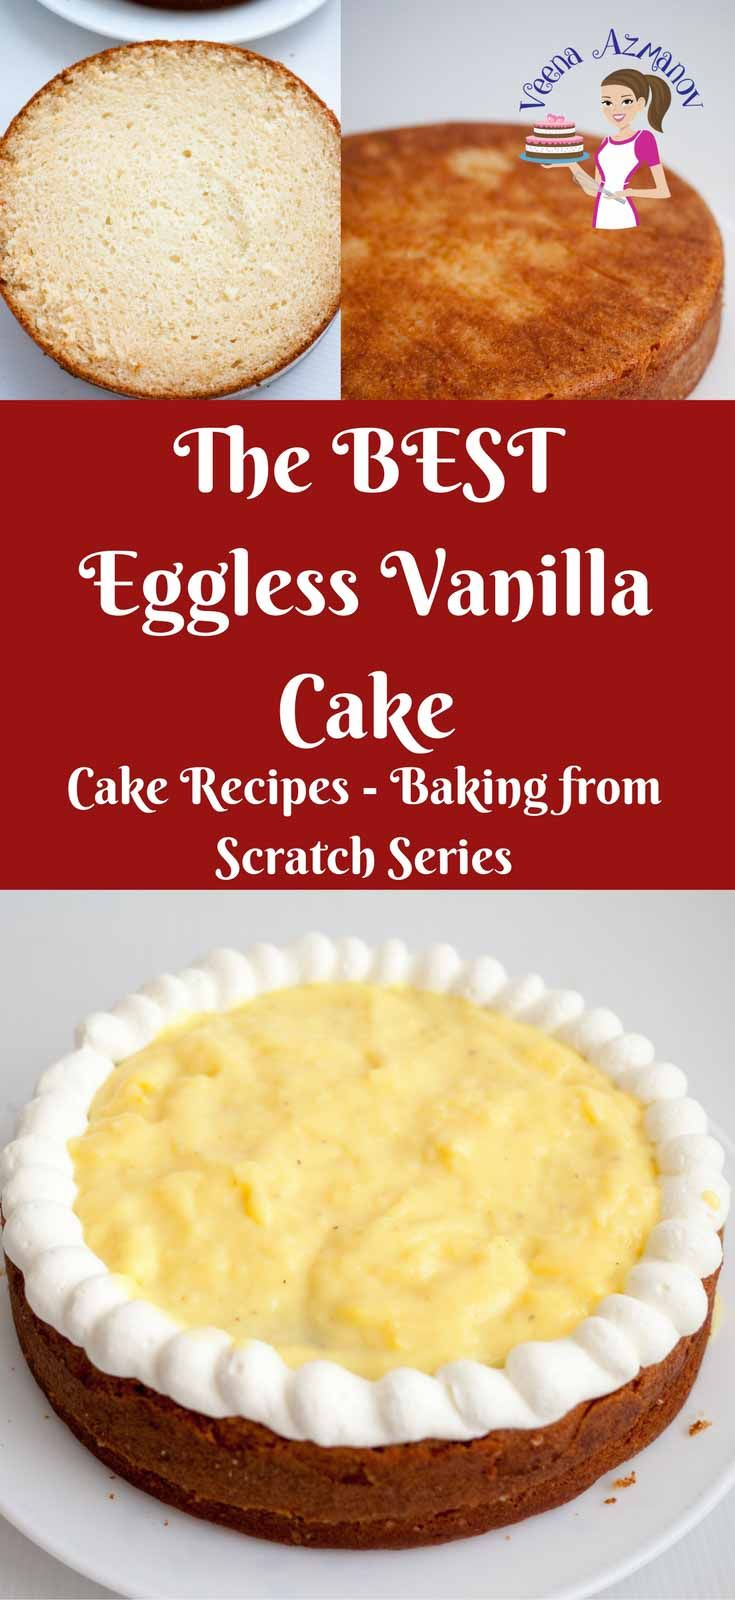 This eggless vanilla cake is moist with a firm texture but soft crumb. It taste absolutely delicious on it's own and can be used to carve into a novelty cake with ease. A versatile cake that can be tweaked to make many different flavors and combinations. via @Veenaazmanov